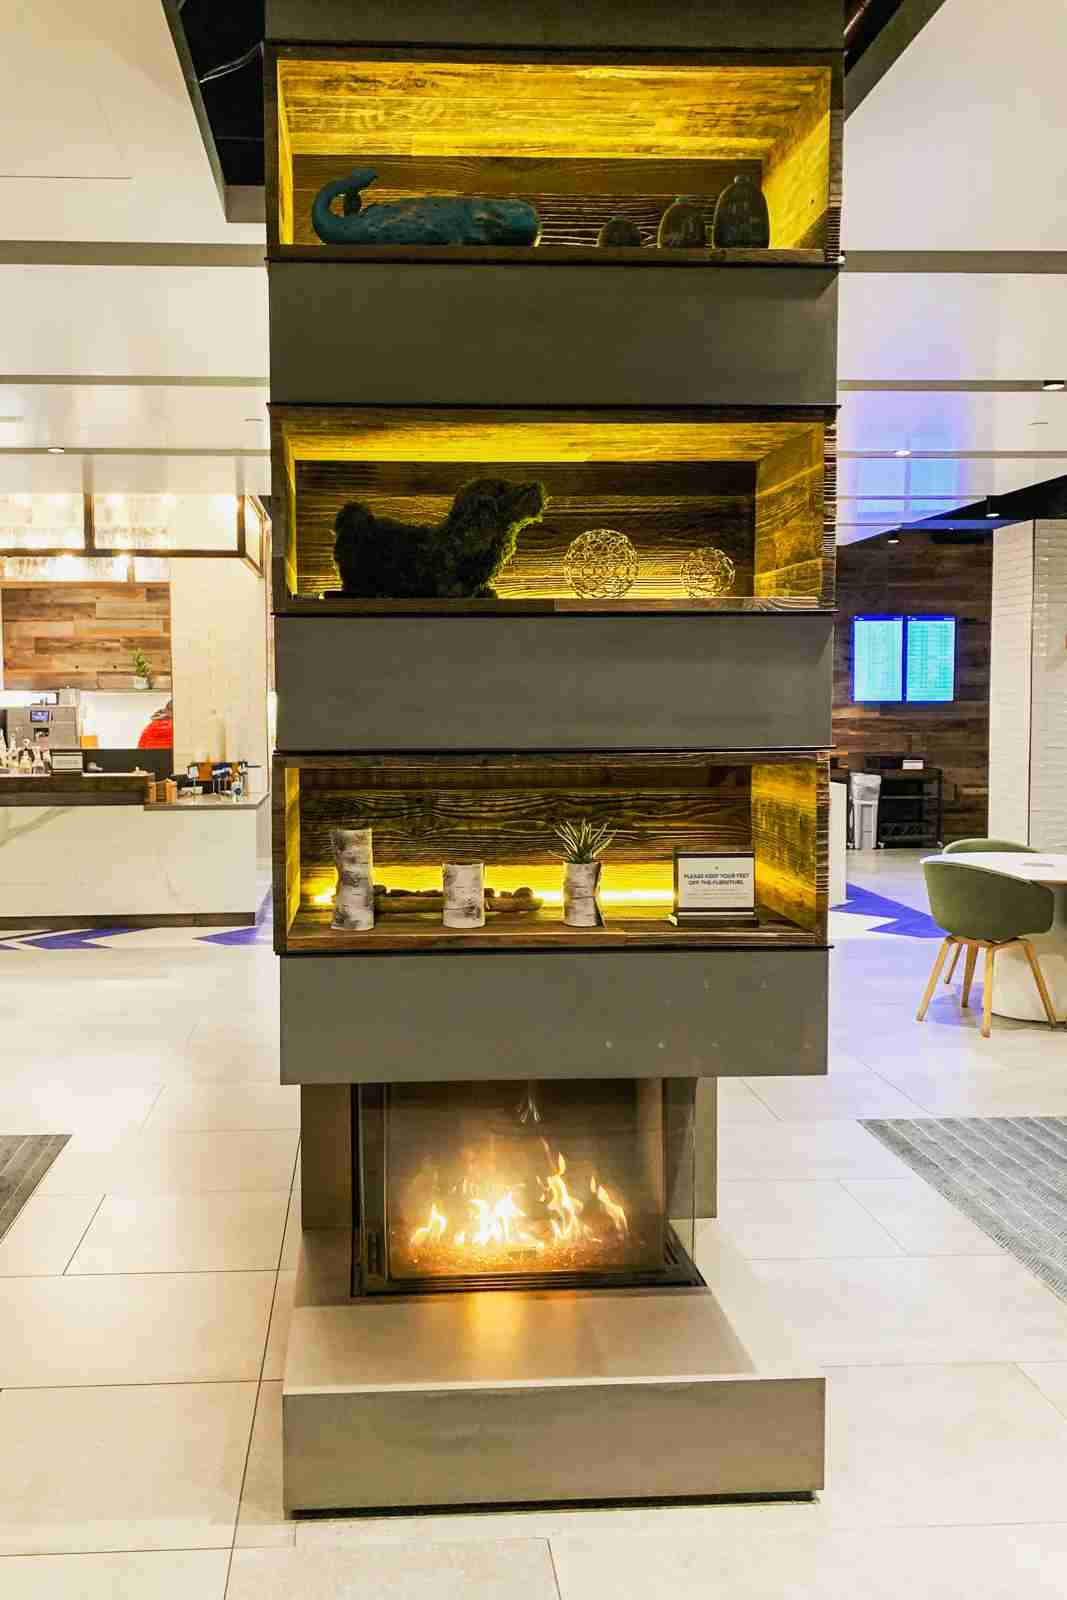 Fireplace in the JFK Alaska Airlines lounge. (Photo by Clint Henderson/The Points Guy)